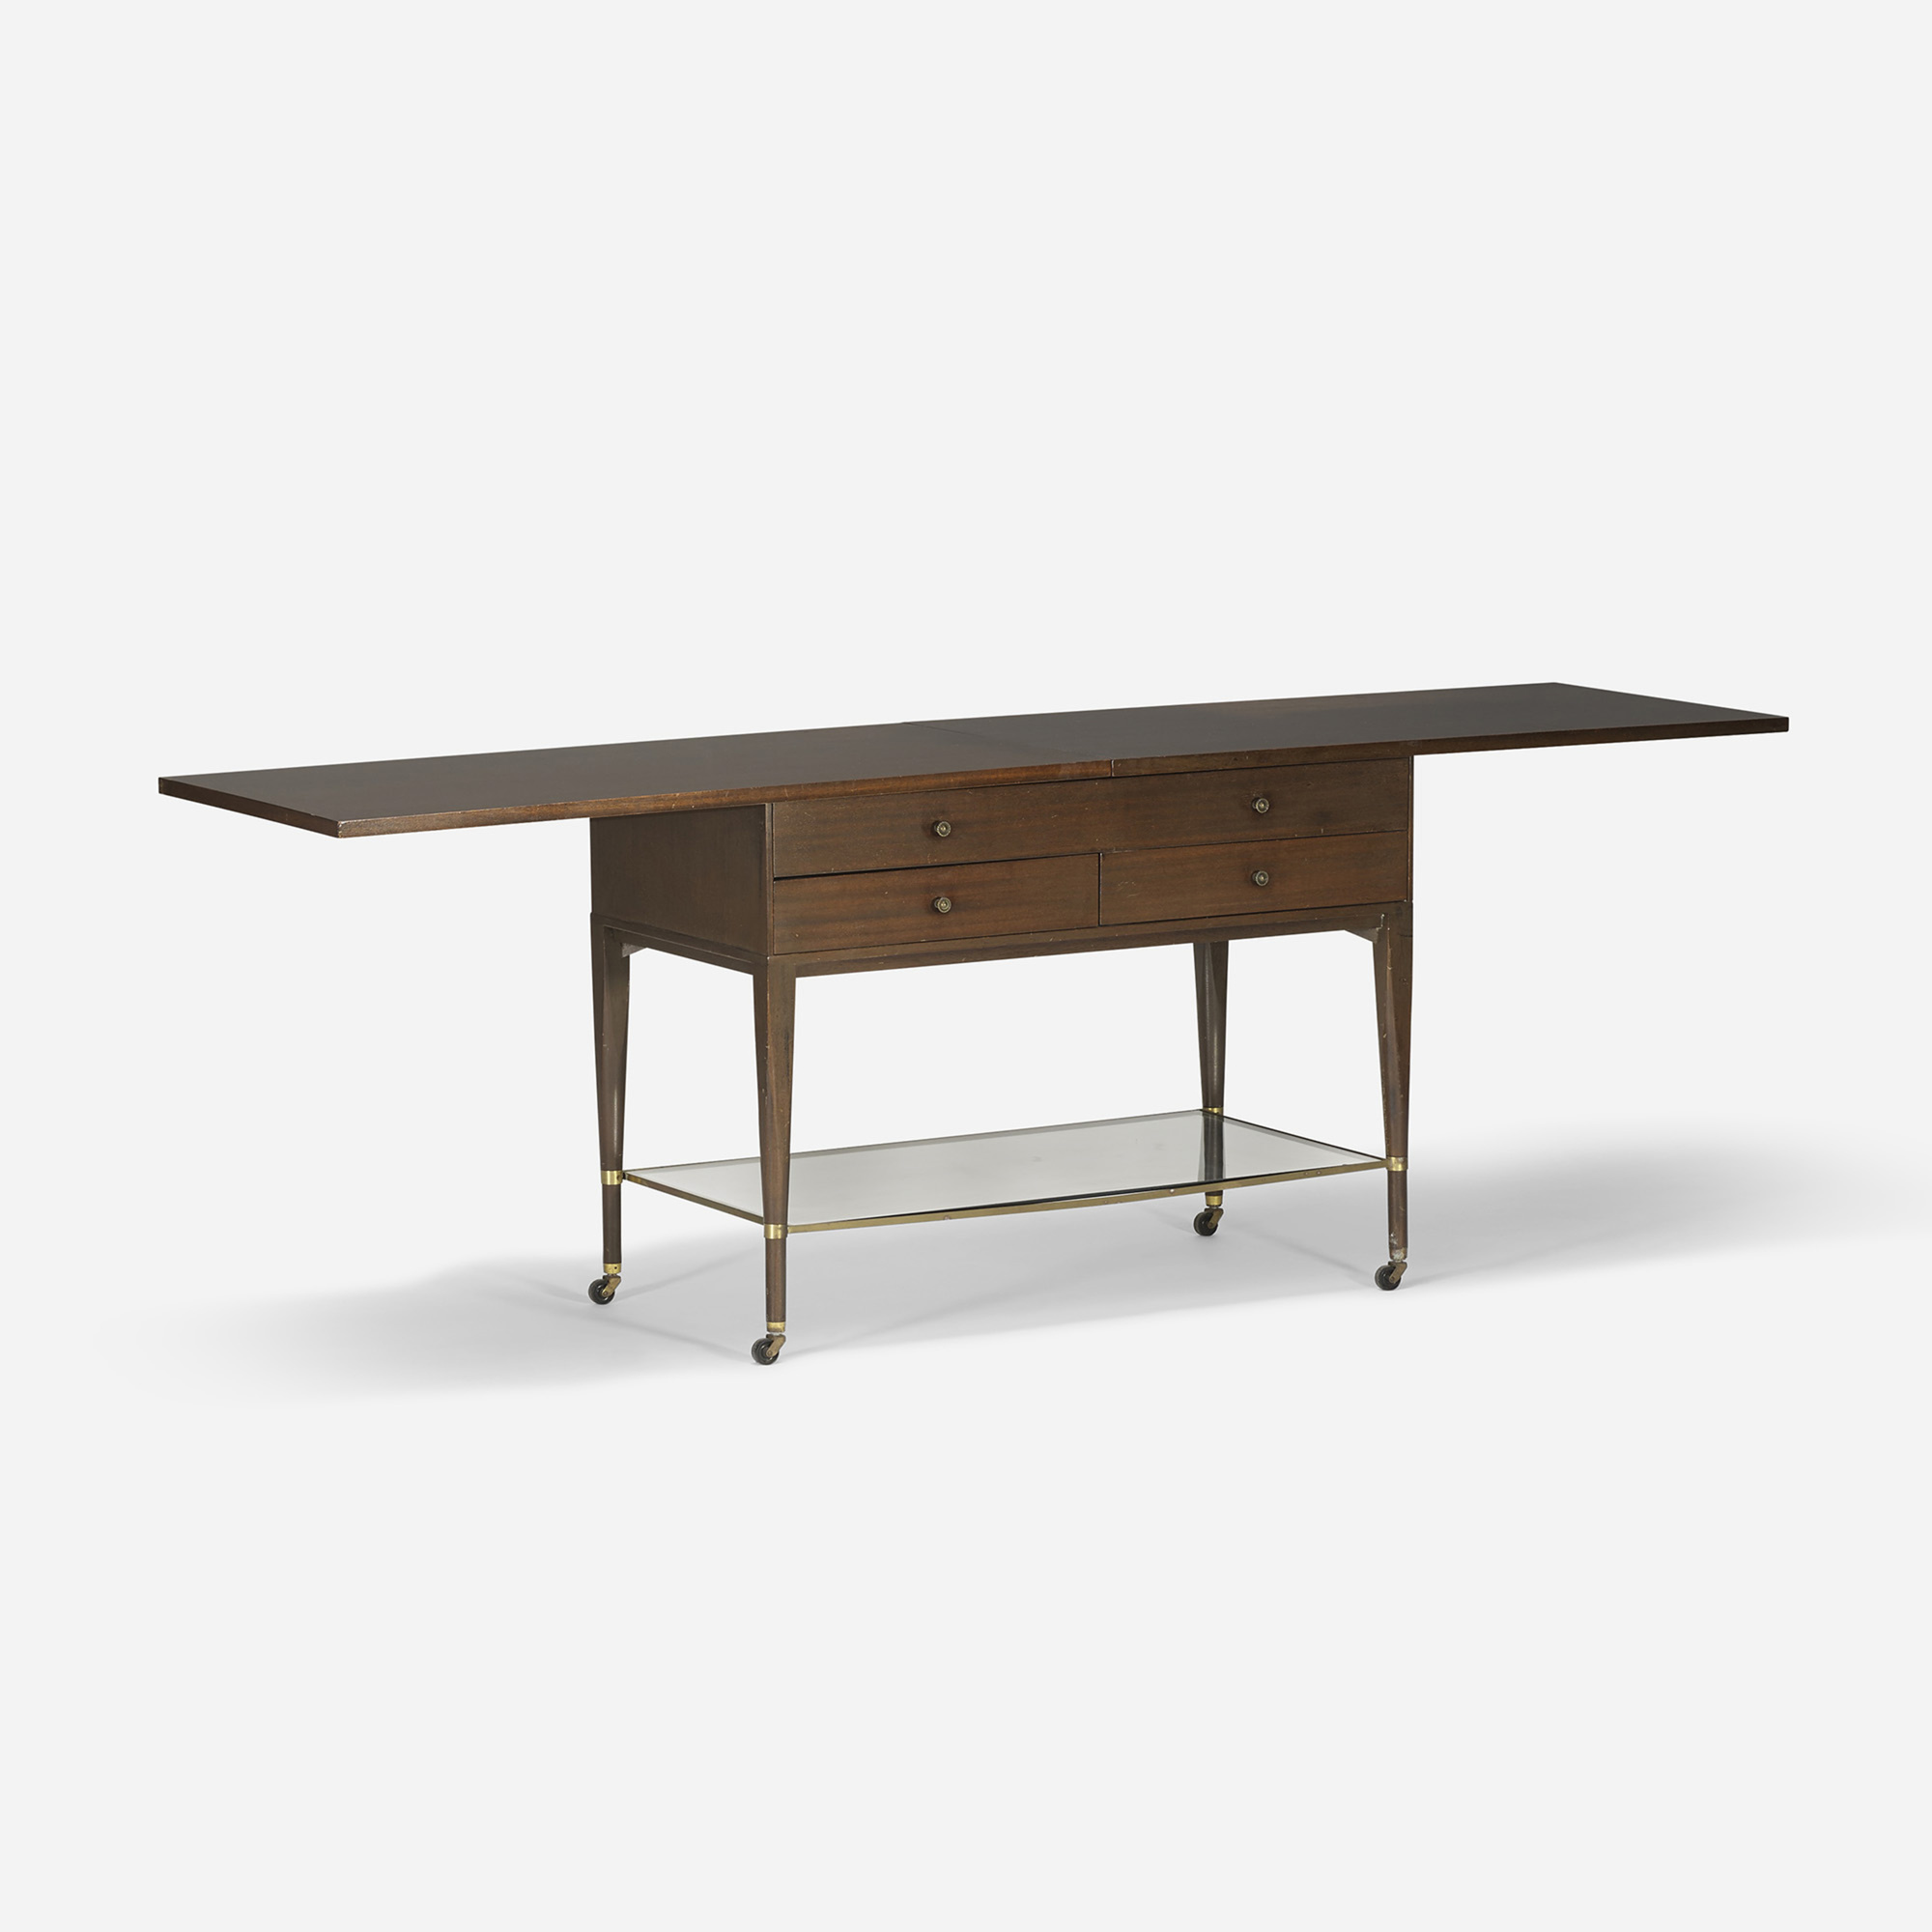 555: Paul McCobb / The Irwin Collection bar cart (2 of 4)